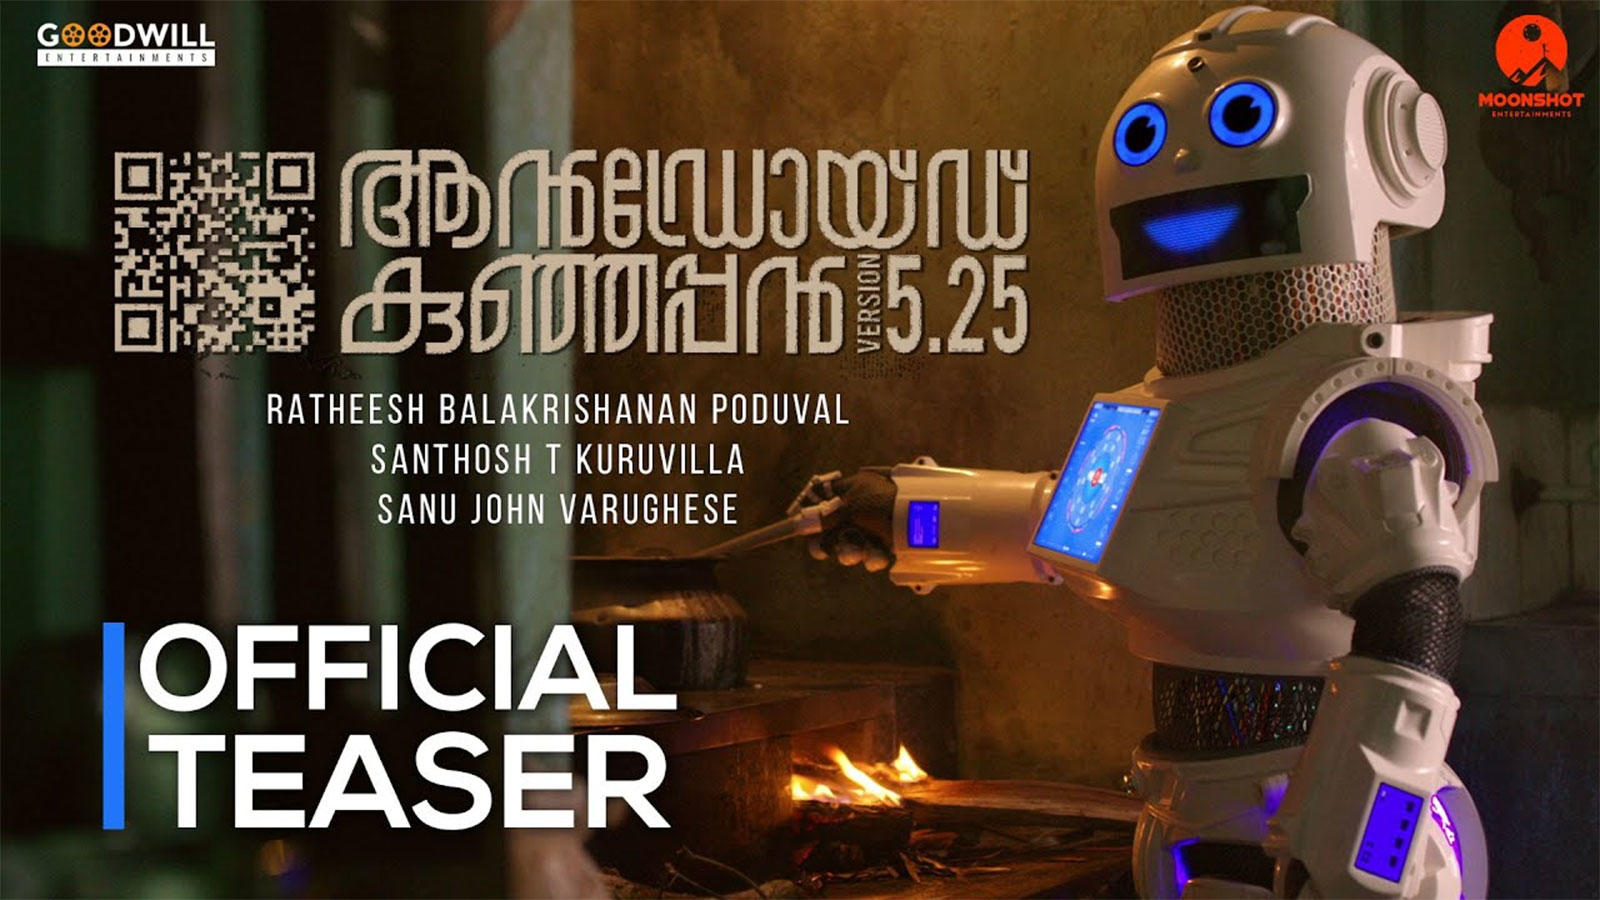 android-kunjappan-version-5-25-official-teaser